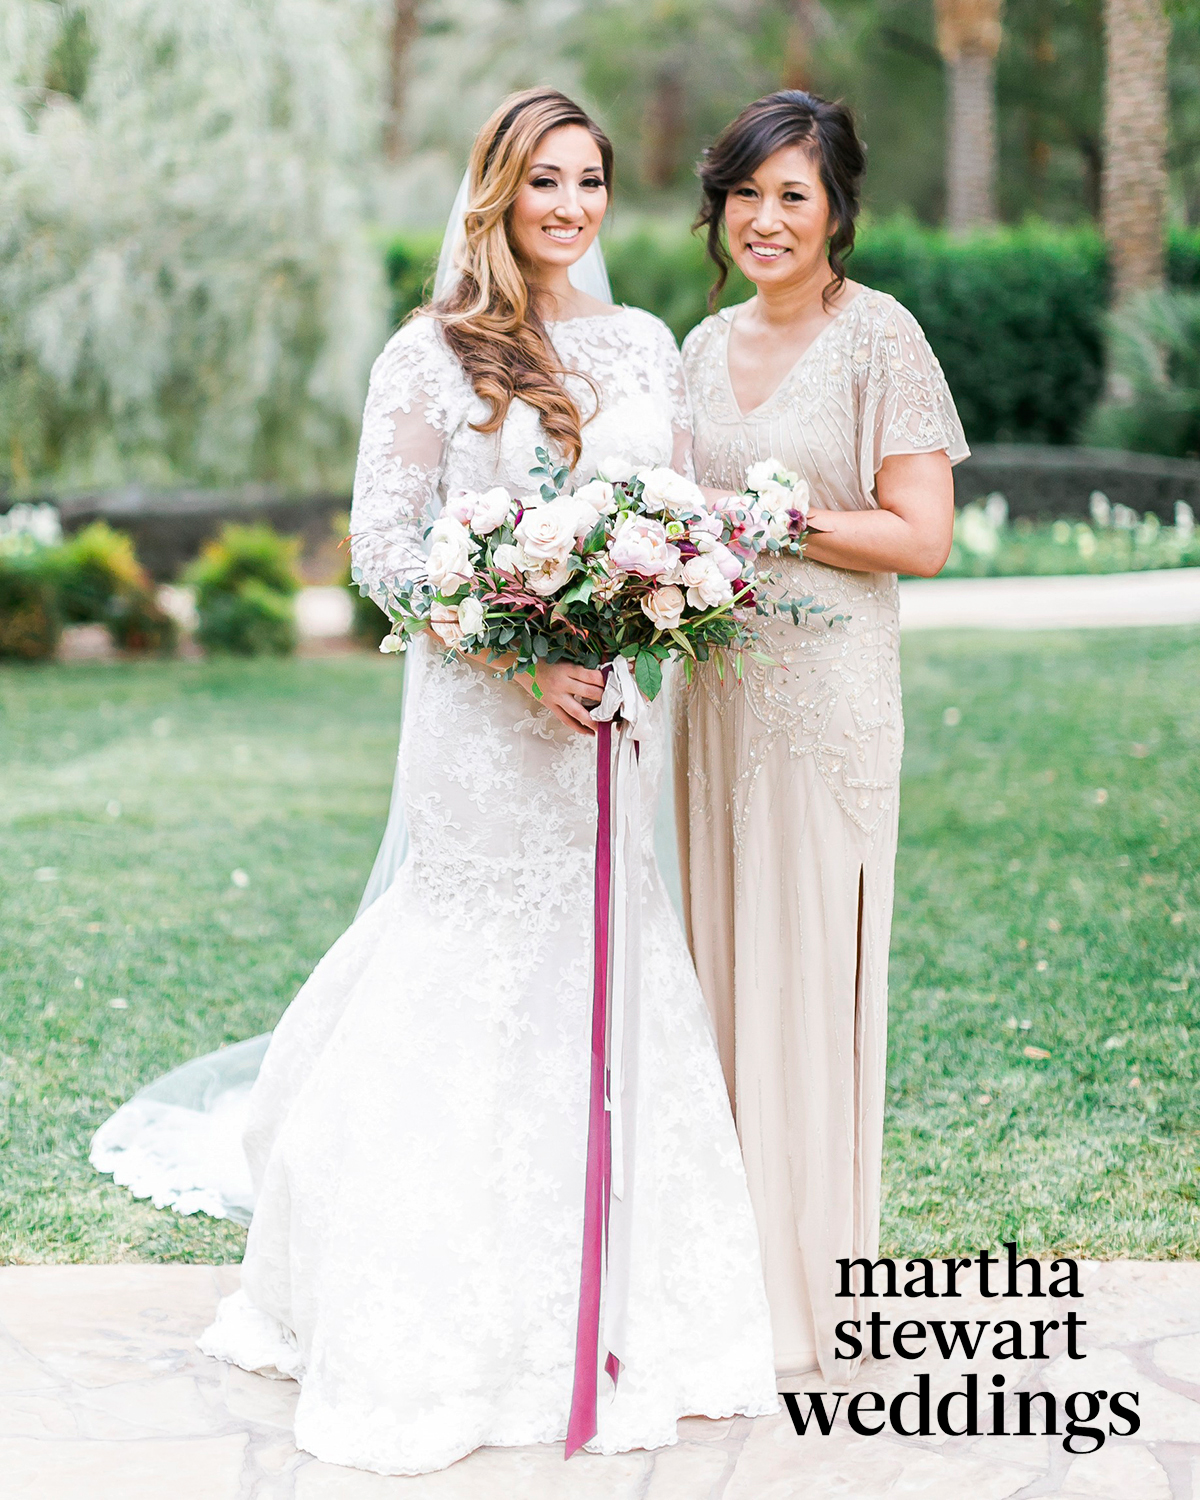 The Prettiest Beige and Gold Dresses for the Mothers of the Bride and Groom